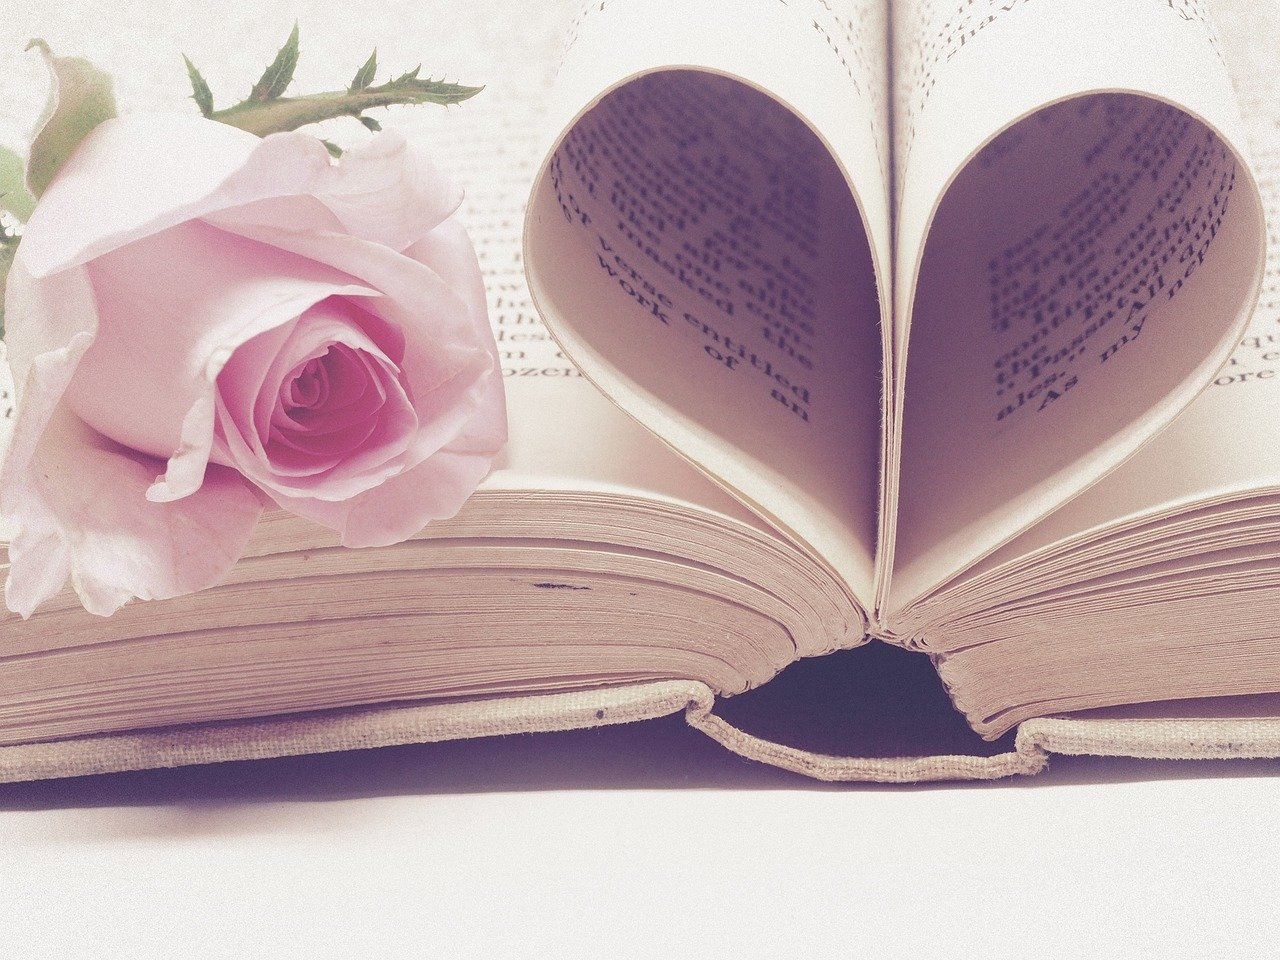 rose with open book pages forming a heart